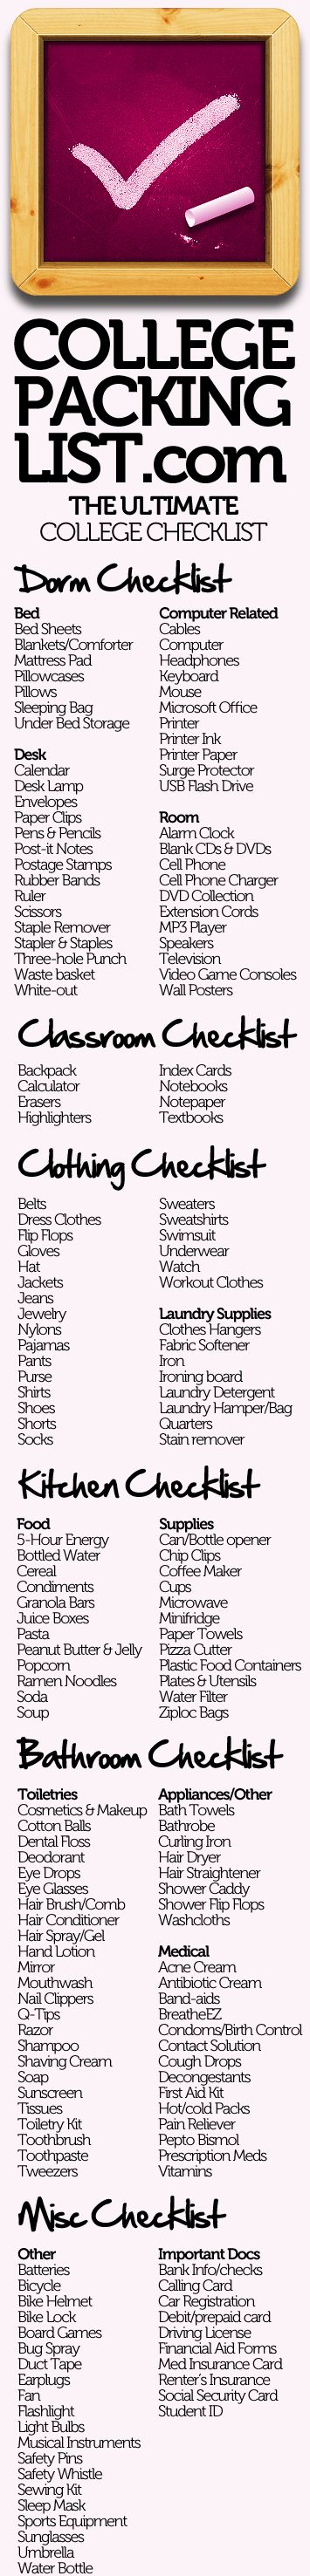 .: Colleges Checklist, Colleges Life, Packing Lists, Check Lists, Colleges Packs Lists, College Dorm, Colleges Dorm, Dorm Rooms, Dorm Checklist